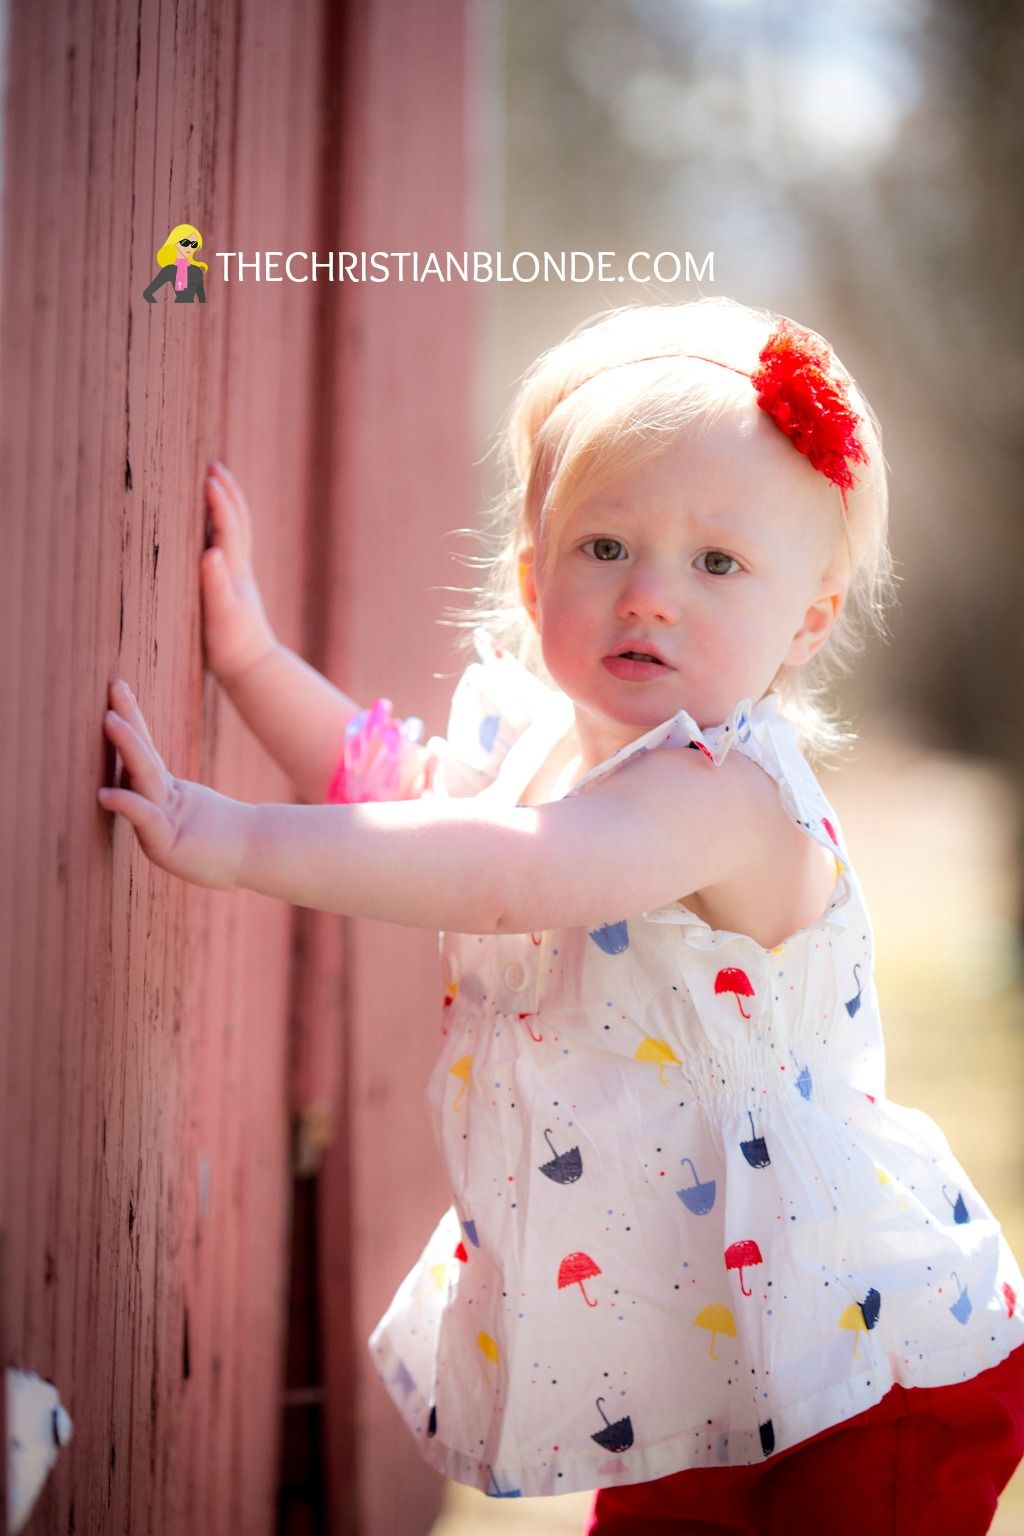 Rustic Red Barn One Year Old First April Showers Bring May Flowers Photoshoot Photo Shoot Props Ideas Photography